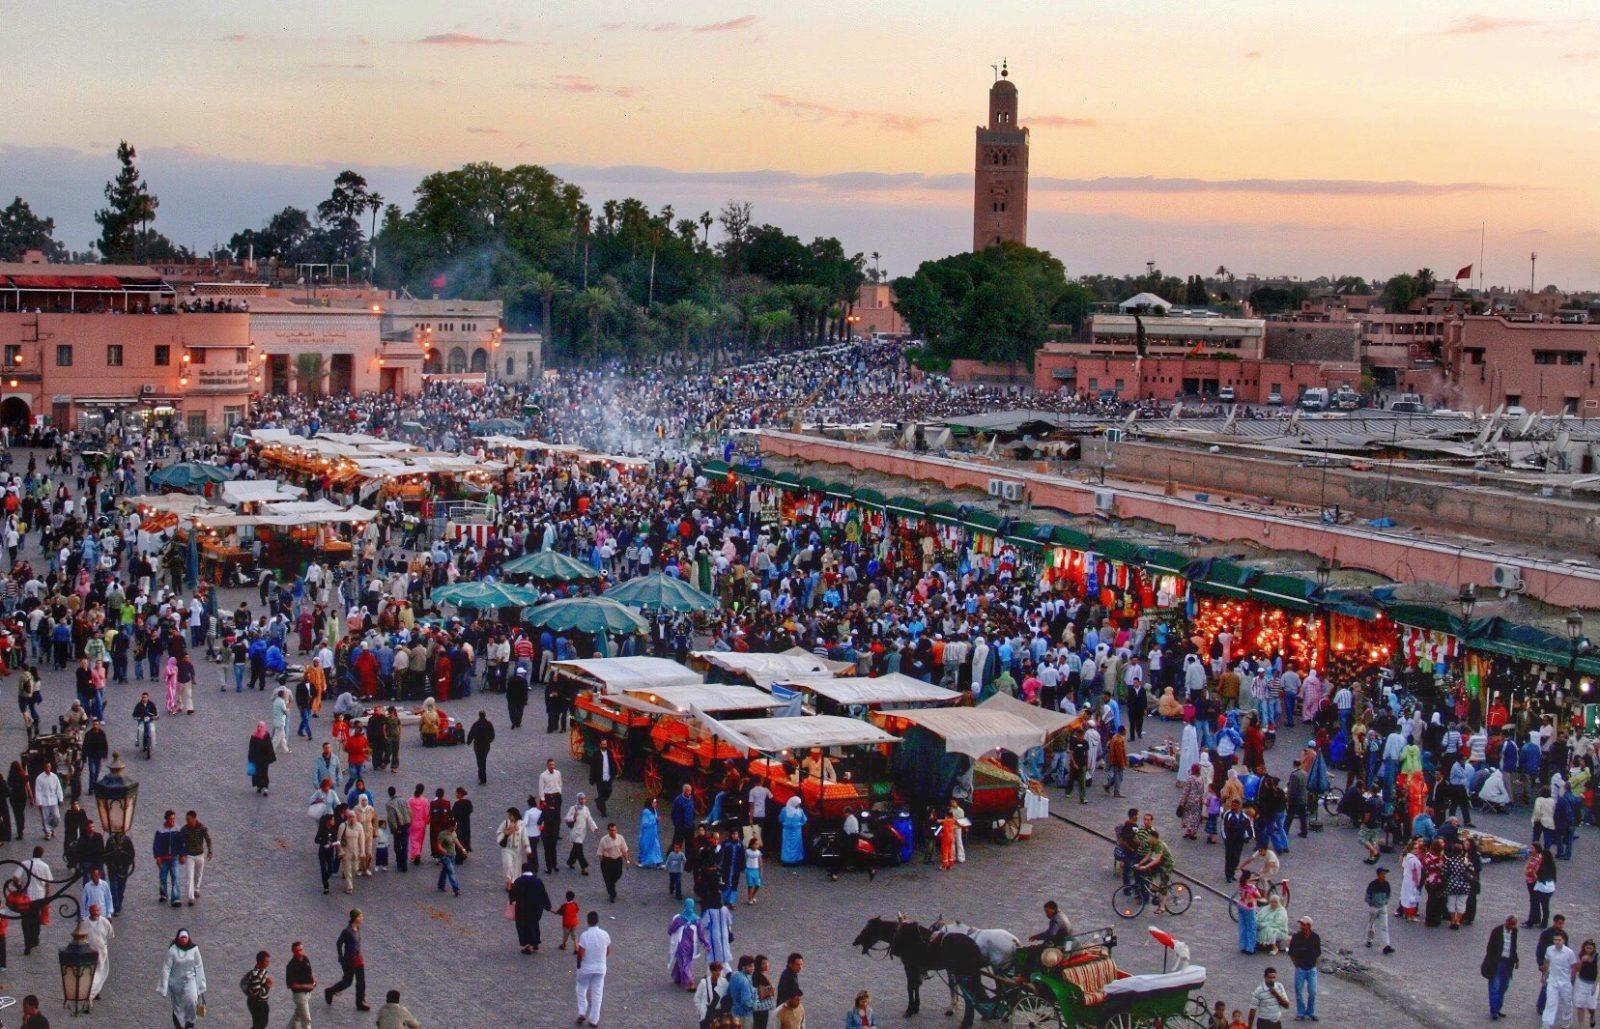 Marrakesh market sunset